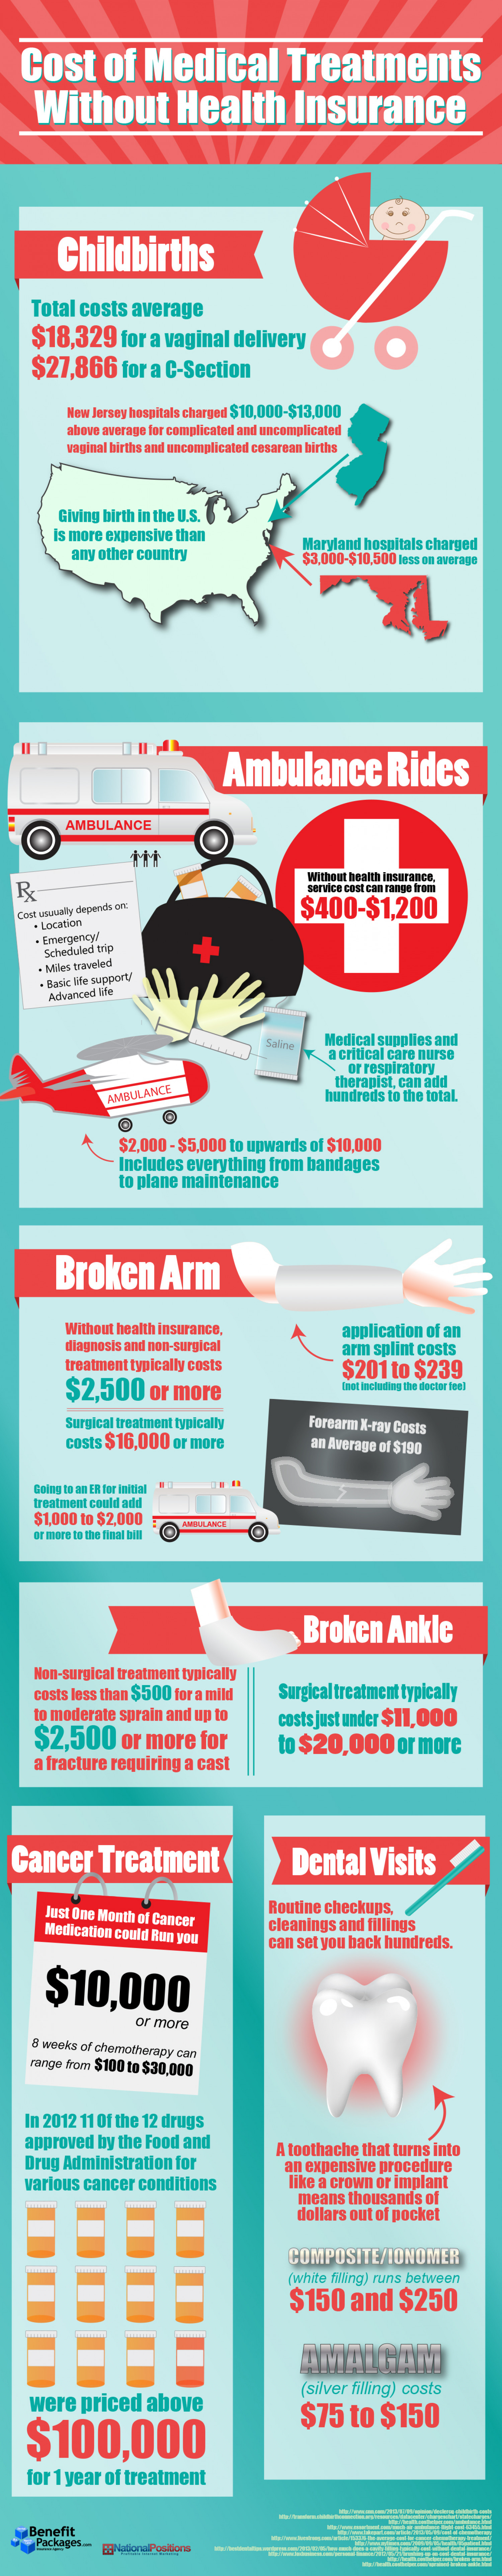 Cost of Medical Treatments Without Health Insurance Infographic